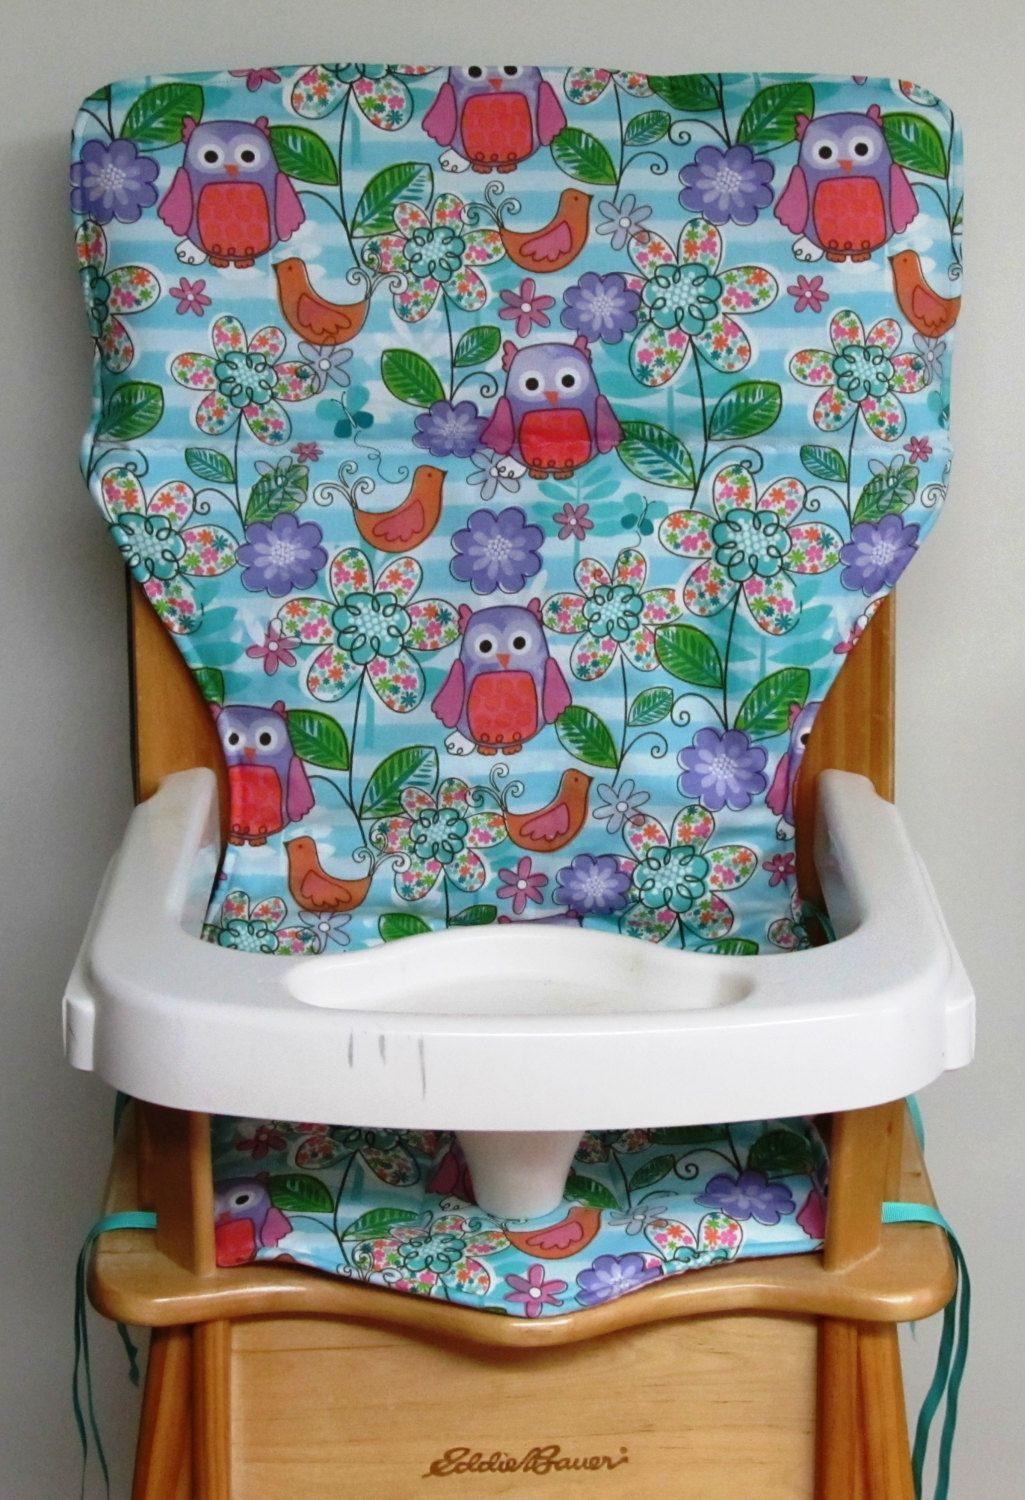 high chair cover, Eddie Bauer replacement high chair pad